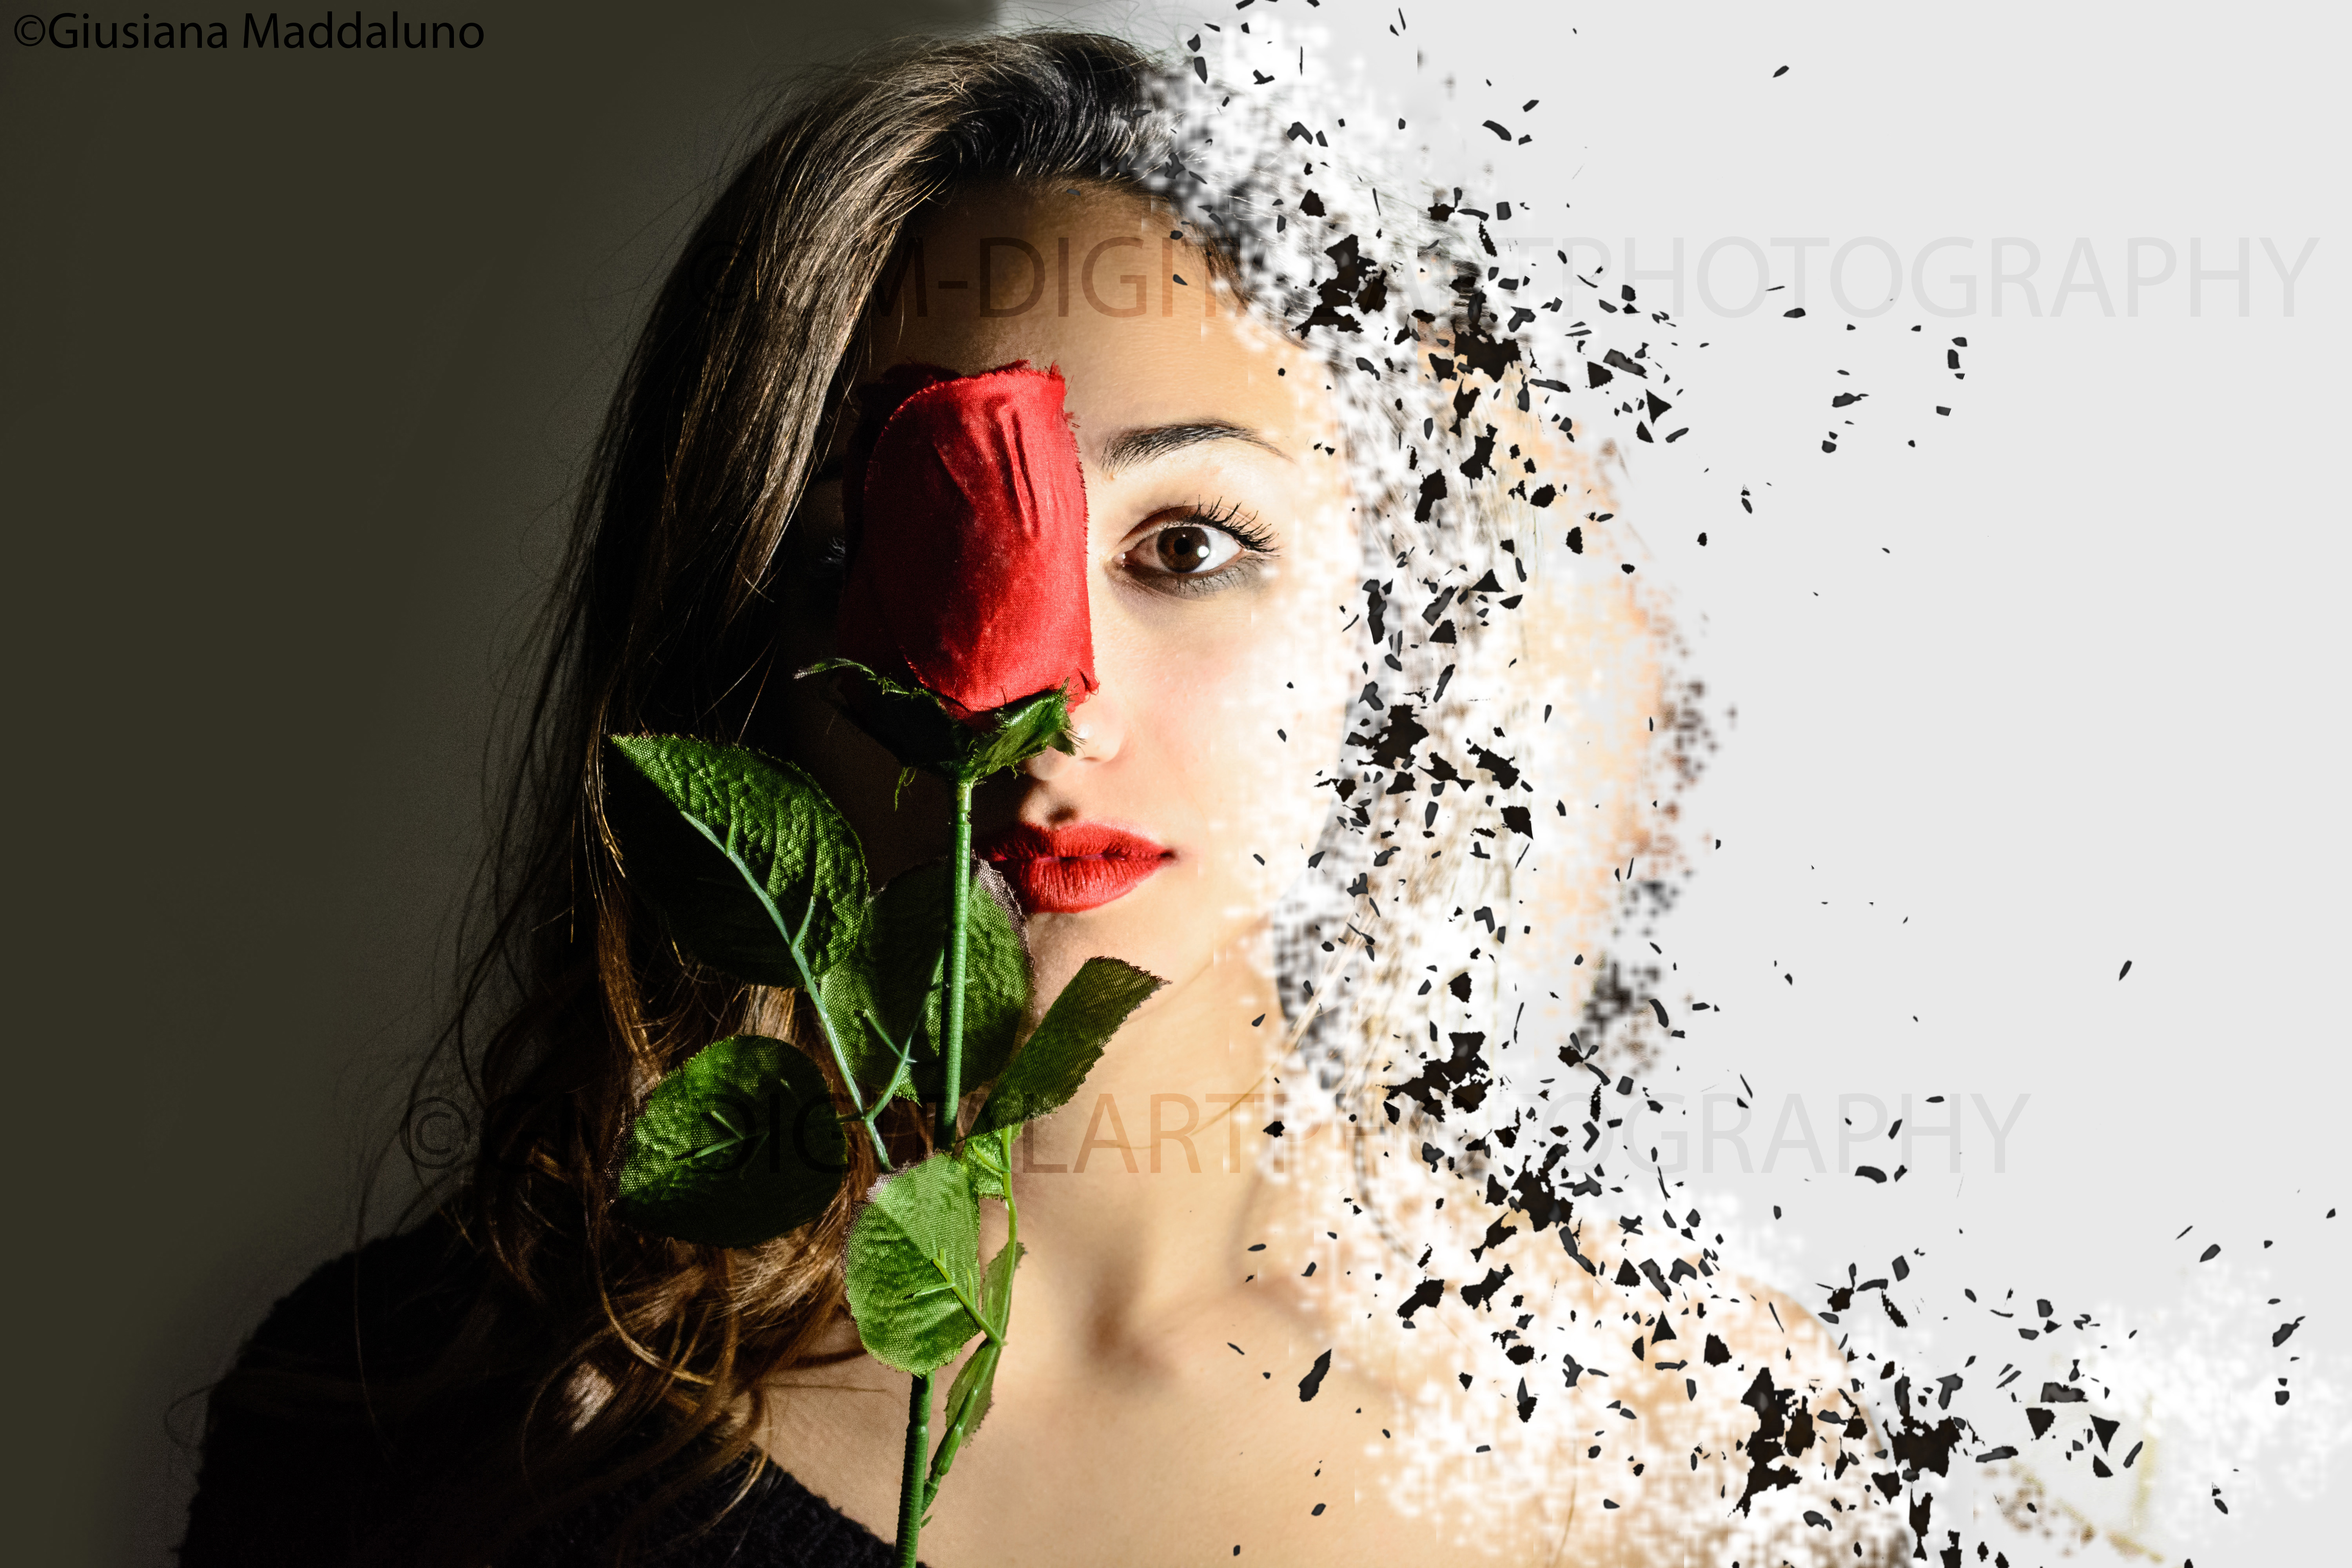 Young Photographer Created A Series Of Digital Art Photography To Say Stop The Violence!